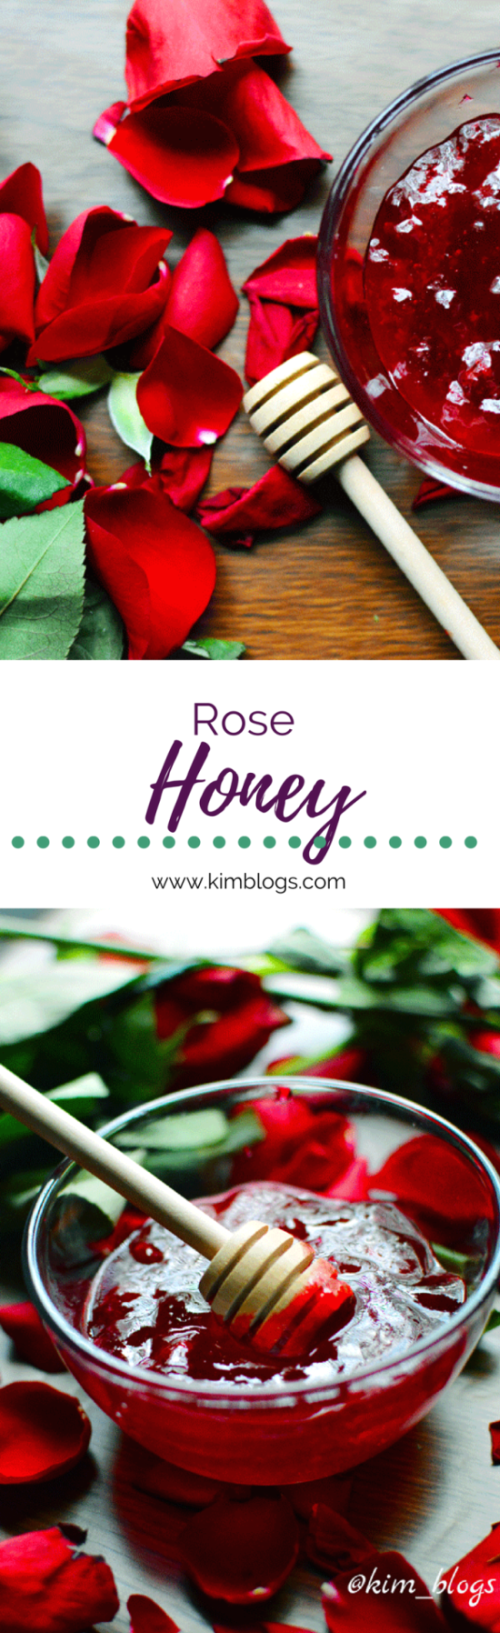 Hey Folks, I hope your day is going well. I am doing great. A few weeks ago my partner got me roses. Last time, I made rose water with the petals, and I still had that so this time I decided to make rose honey. Some of the benefits of roses according to the Herbal Academy roses can act as: antidepressant antispasmodic aphrodisiac astringent antibacterial antiviral antiseptic anti-inflammatory blood tonic cleansing digestive stimulant expectorant increases bile production kidney tonic…